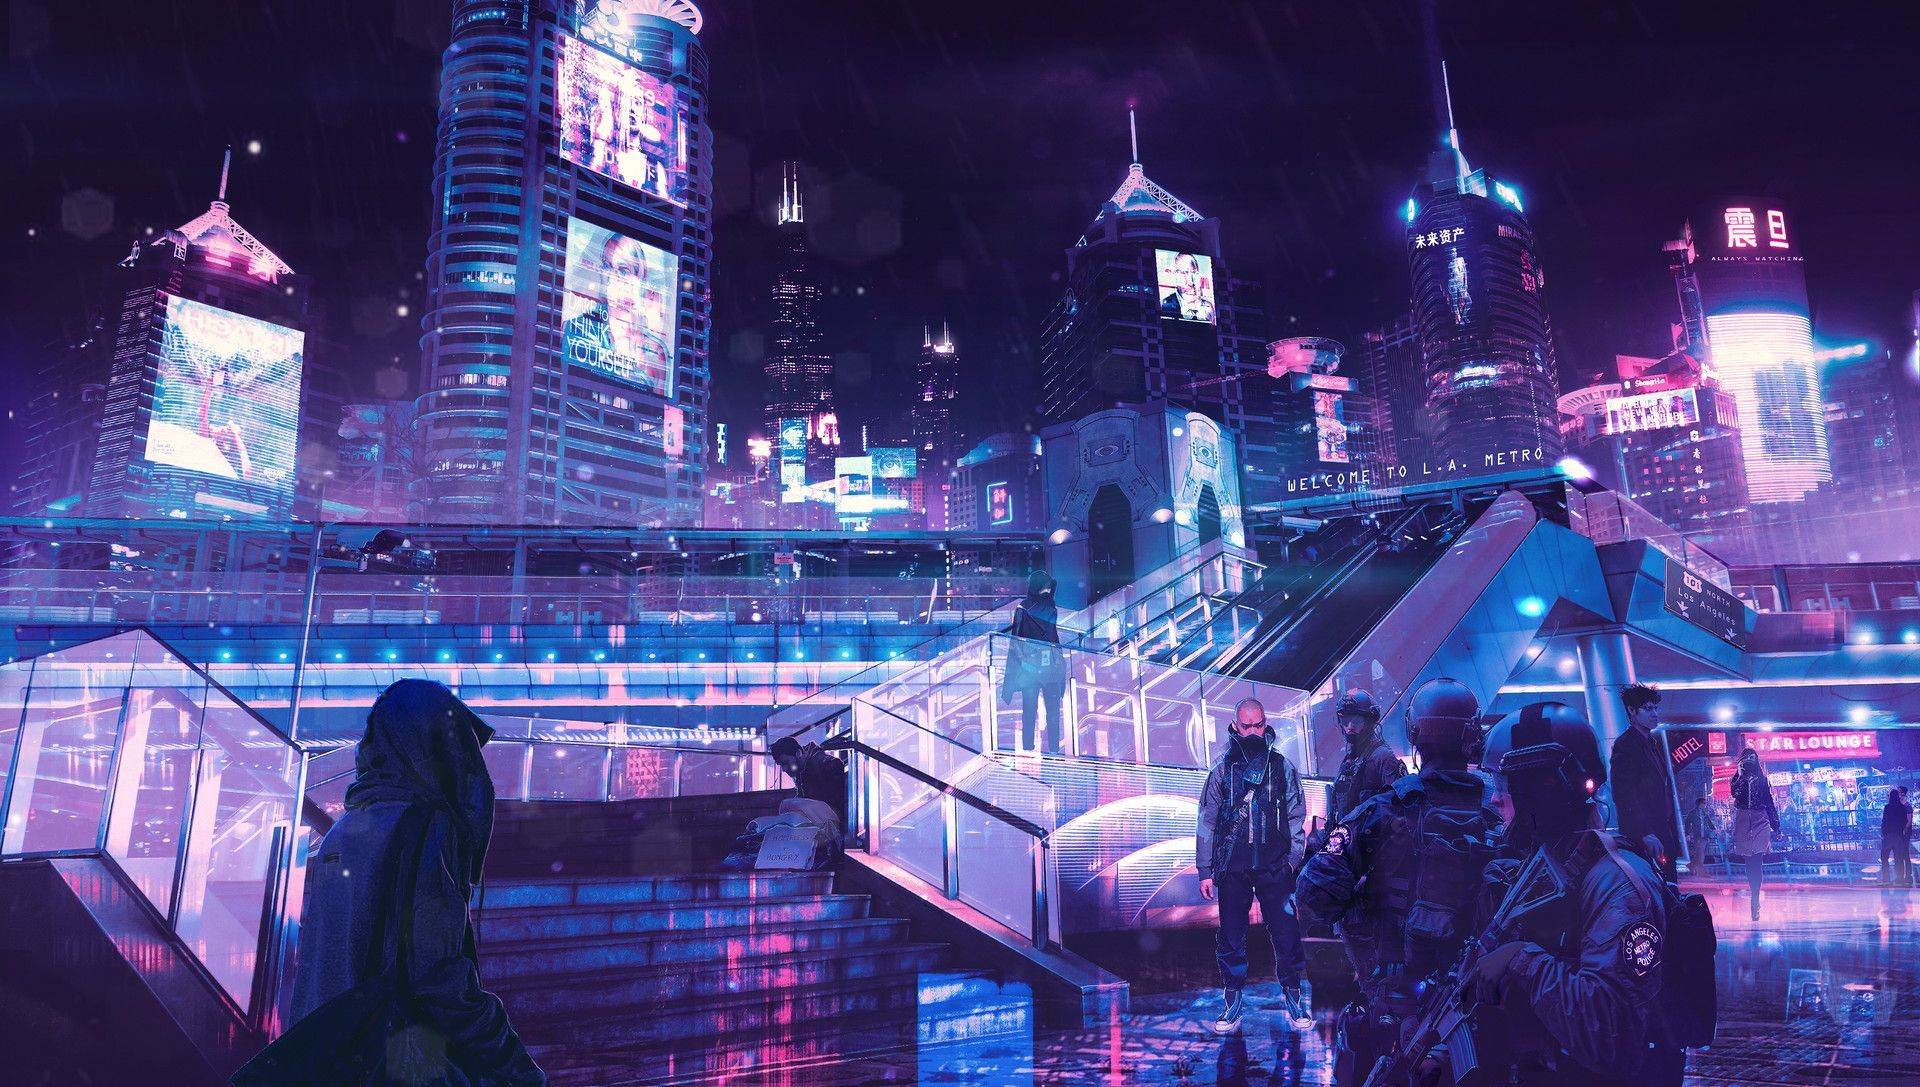 City Background Aesthetic Posted By Zoey Mercado